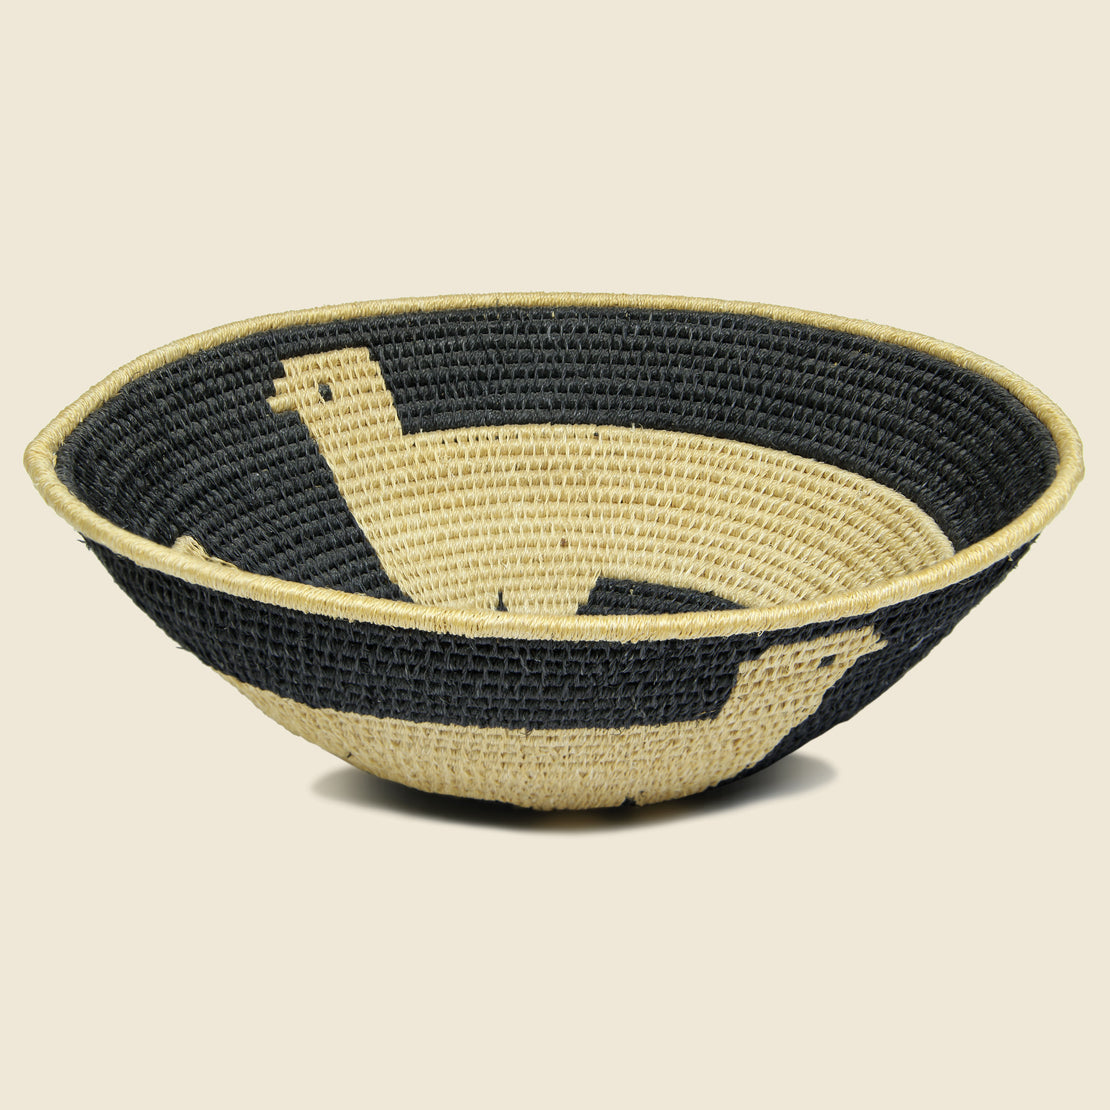 Vintage Papago-Style Native American Basket - Bird Motif